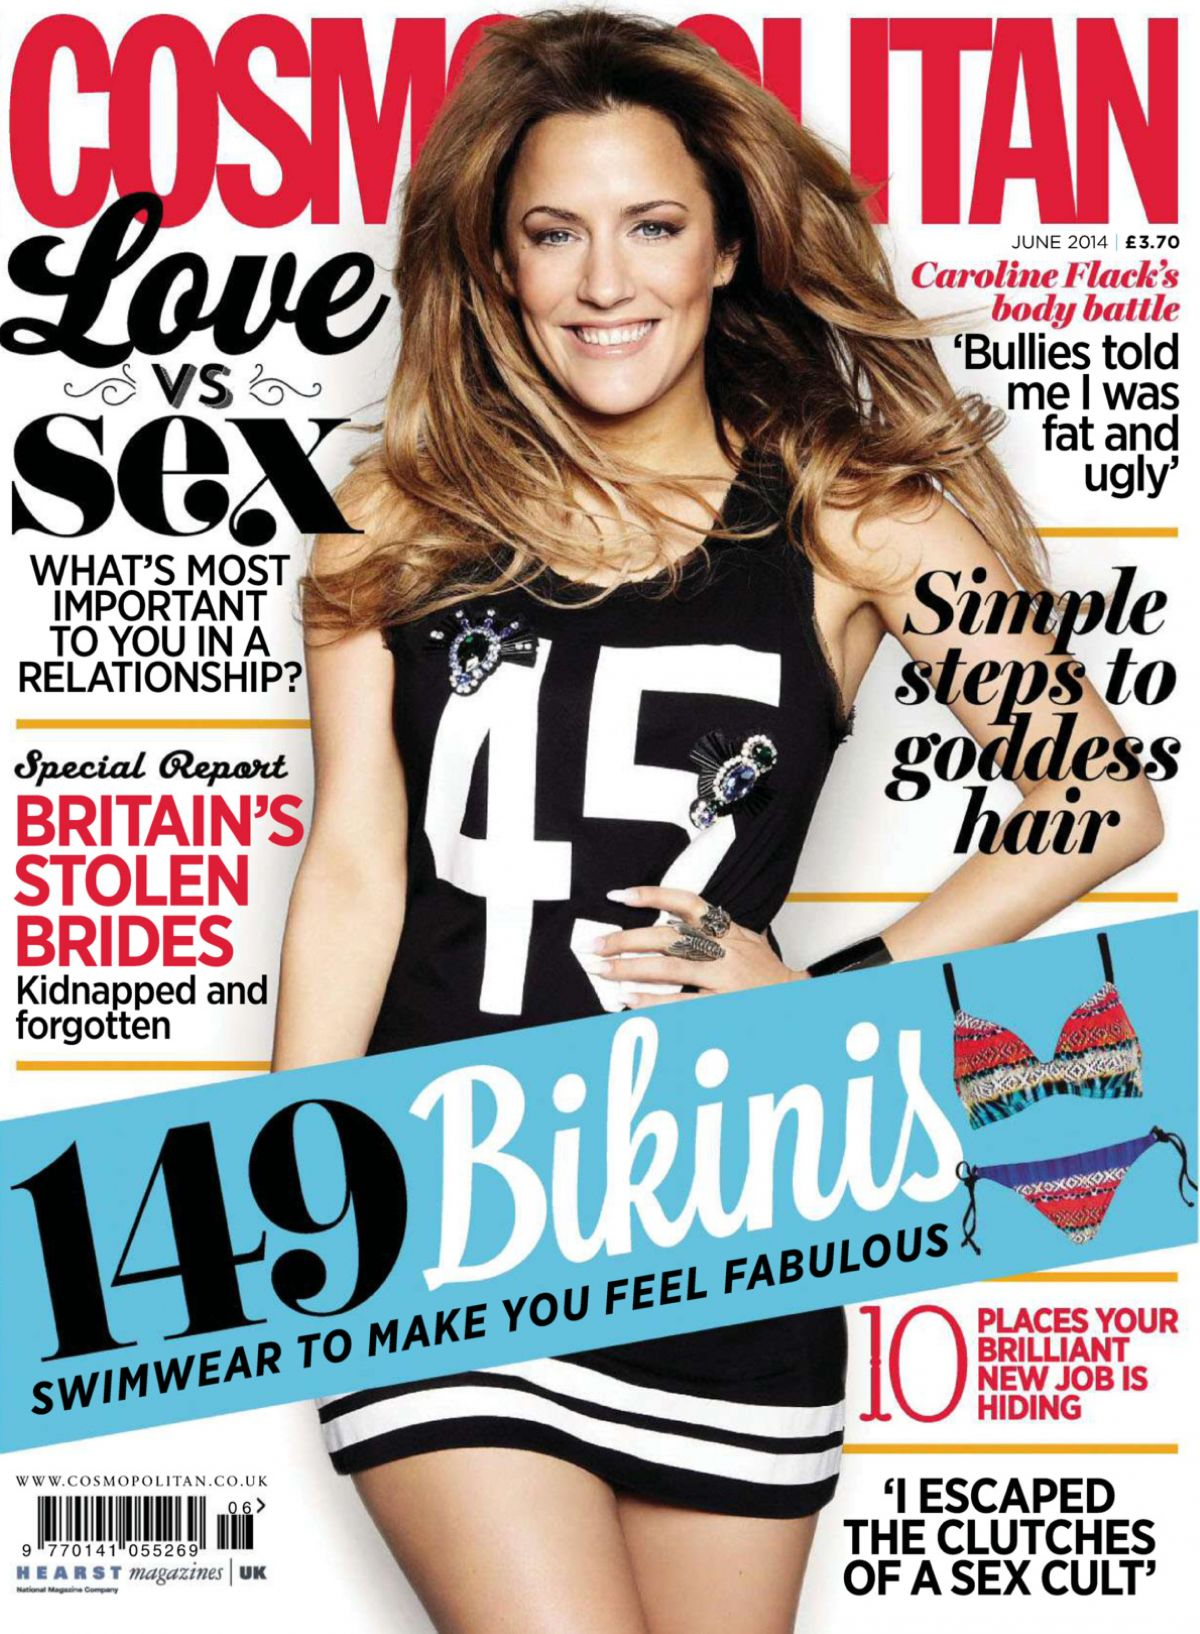 CAROLINE FLACK in Cosmopolitan Magazine, June 2014 Issue